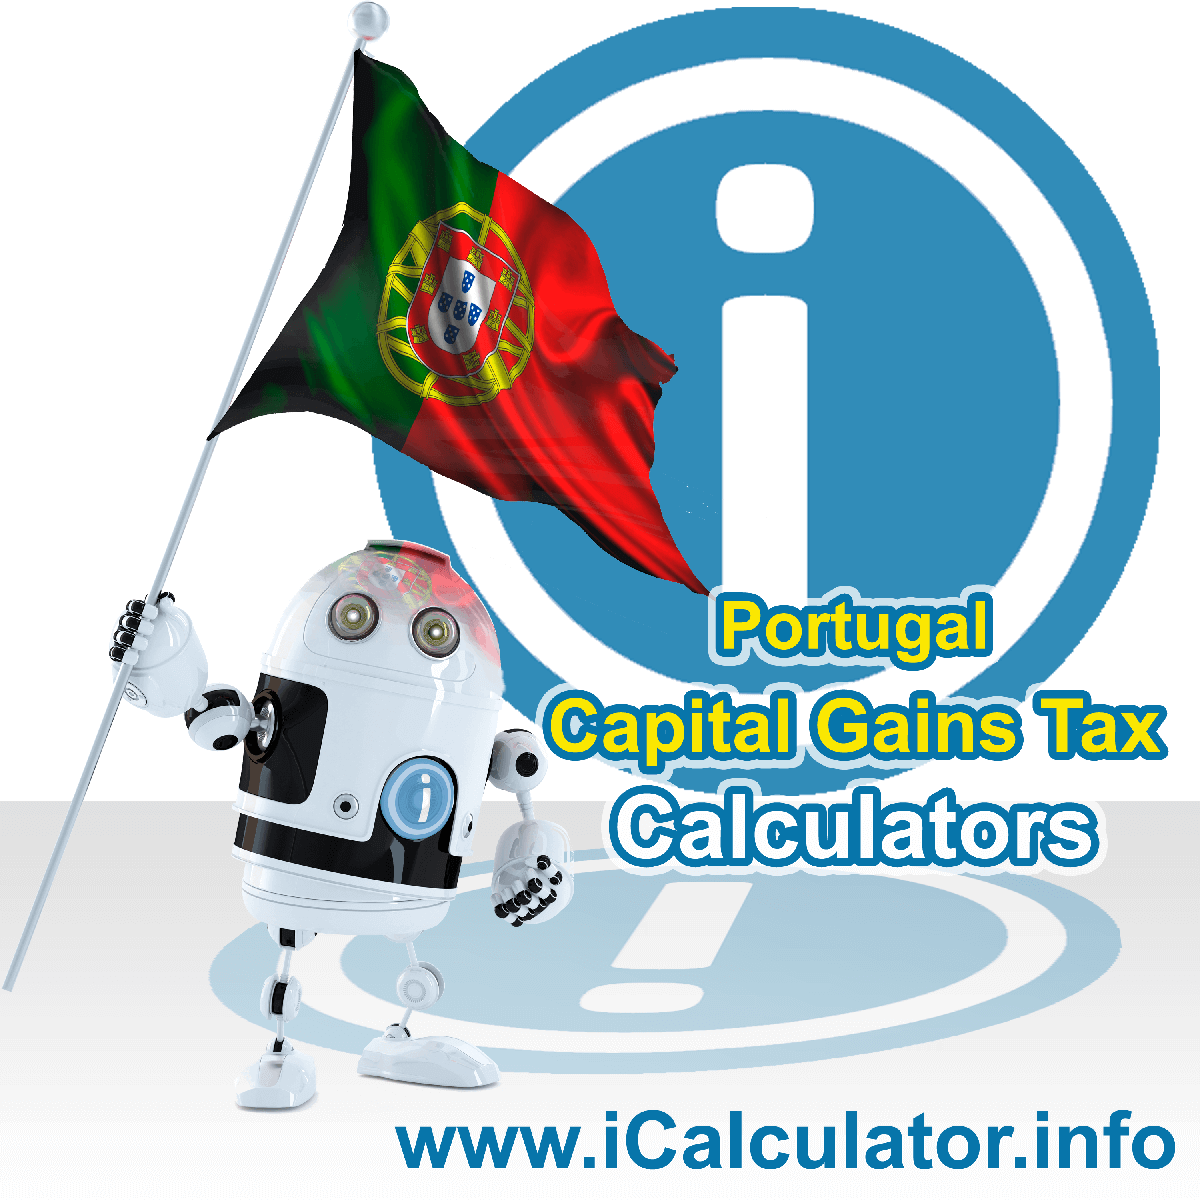 Portugal Capital Gains Tax Calculator. This image shows the Portugal flag and information relating to the capital gains tax rate formula used for calculating Capital Gains Tax in Portugal using the Portugal Capital Gains Tax Calculator in 2020